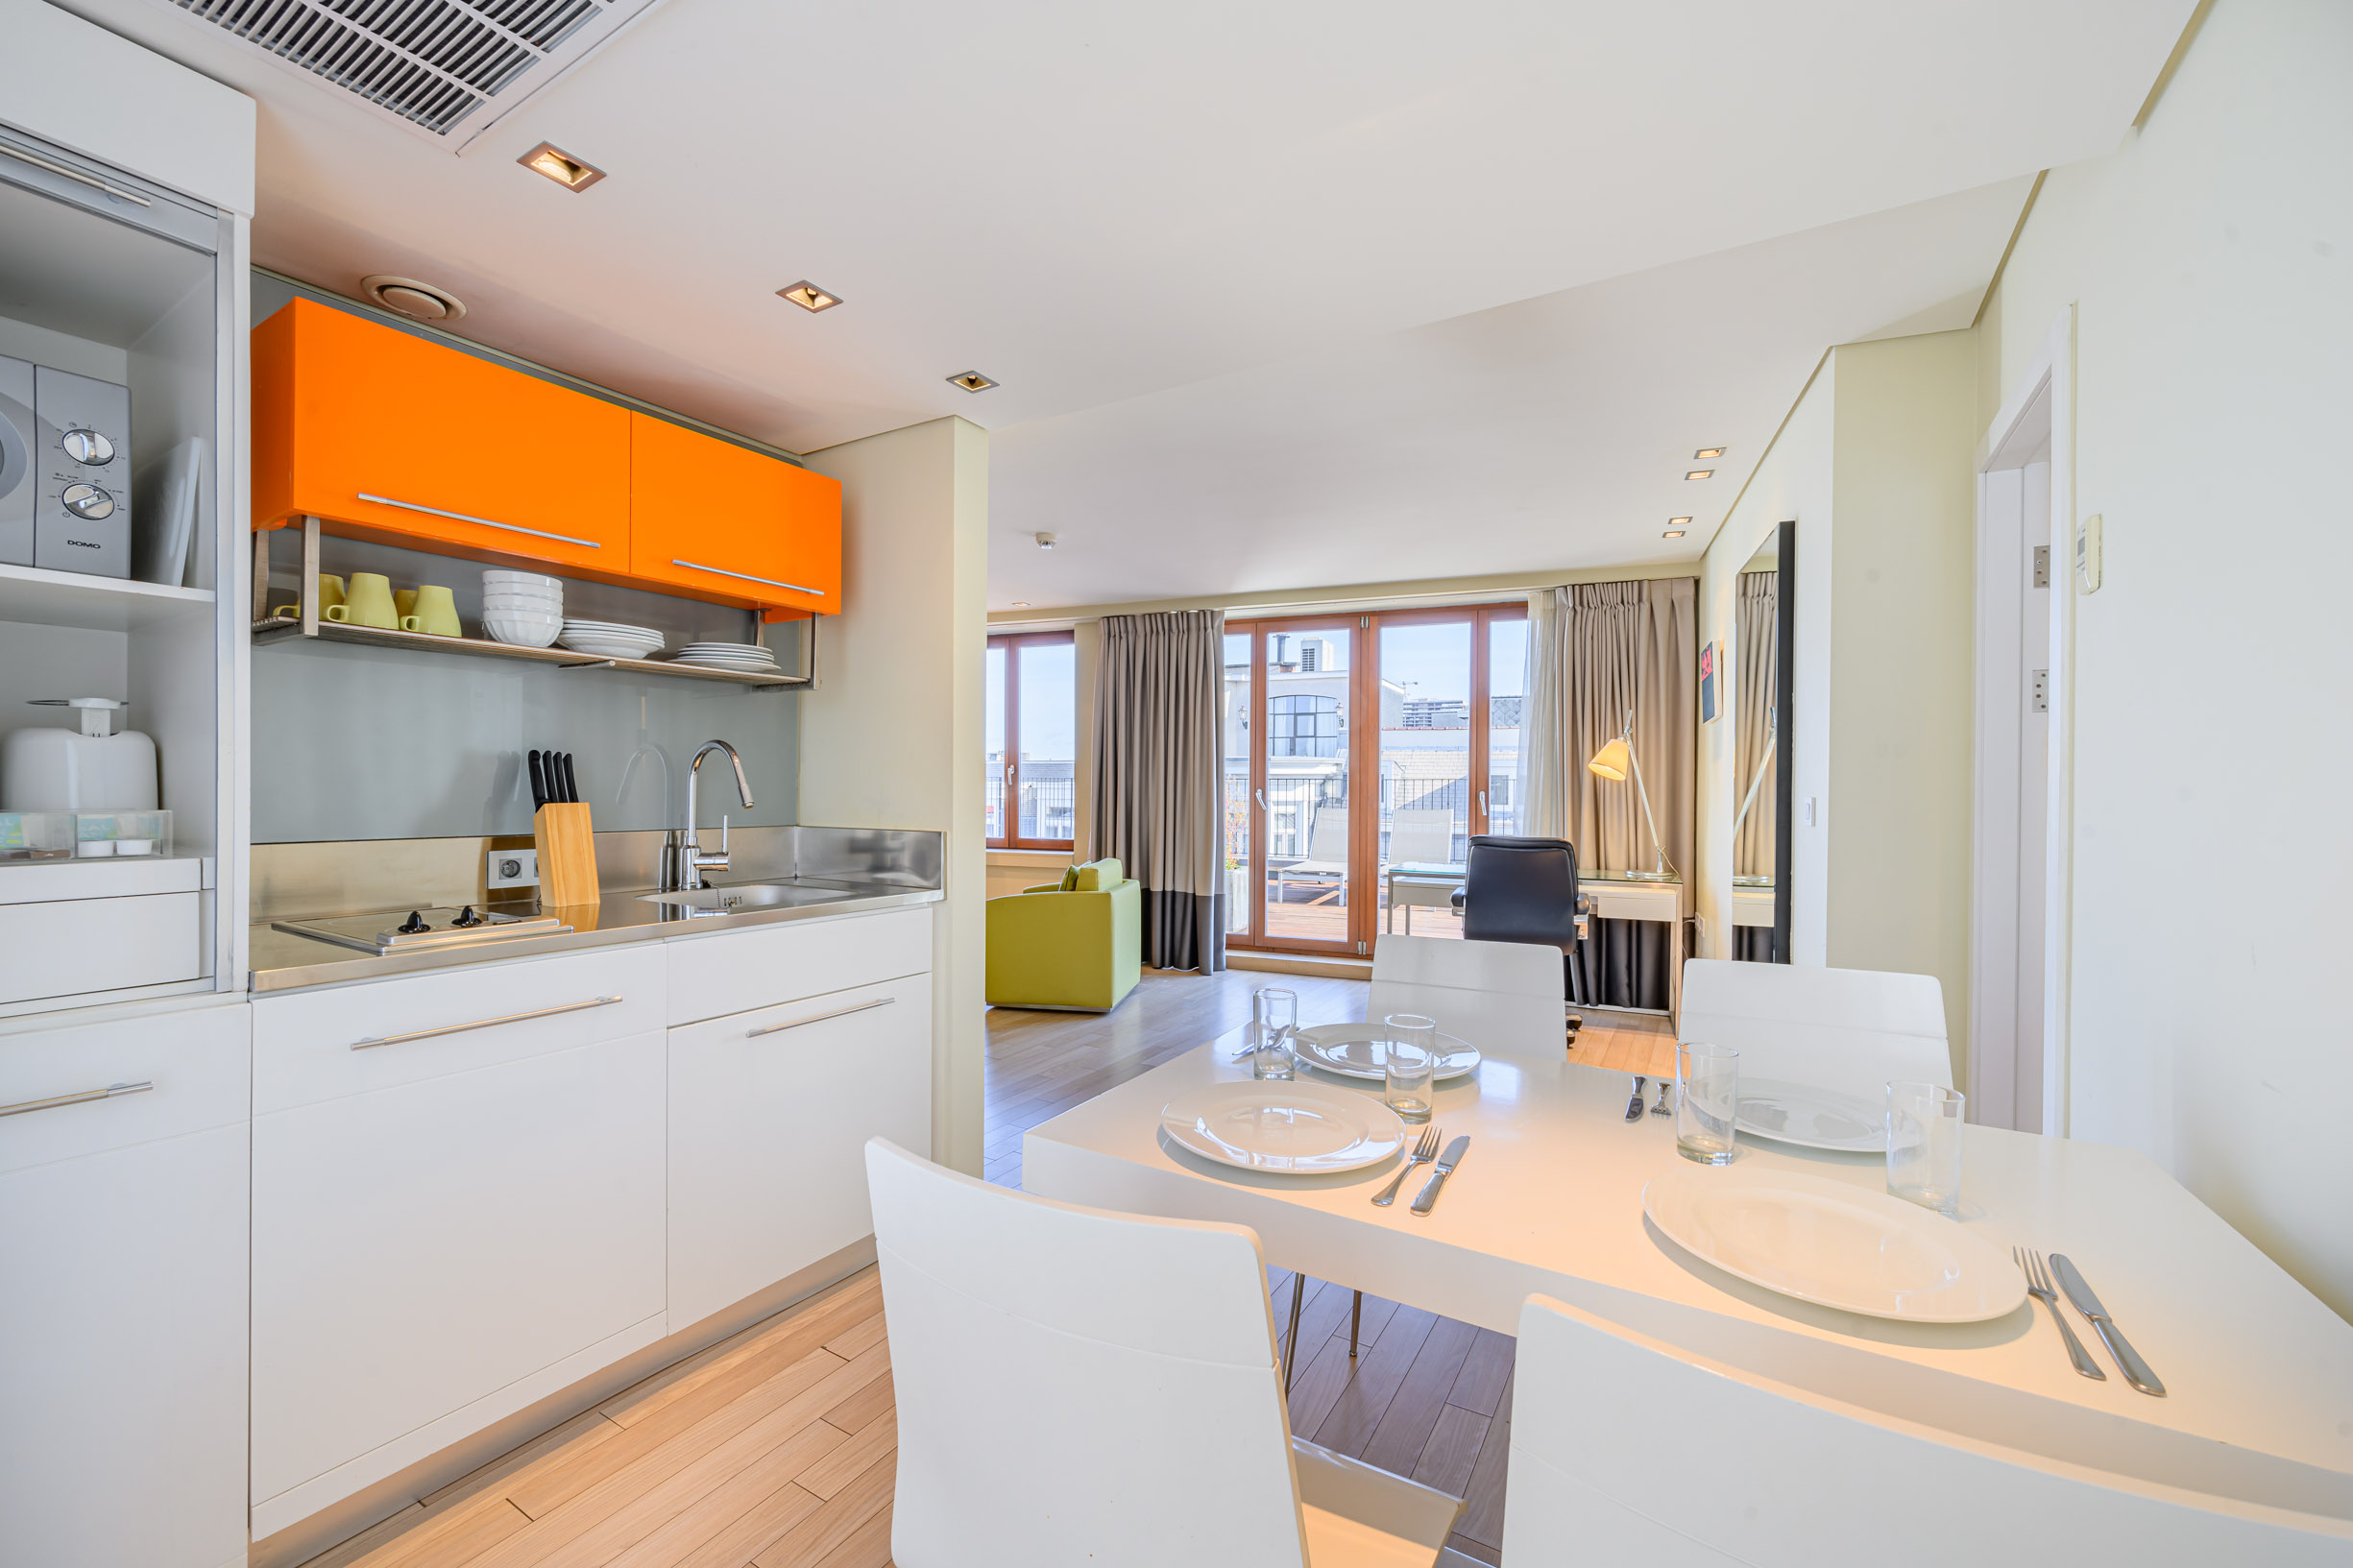 104/Grand-Place/Grand-Place (new 2019)/BAparthotels_Grand_Place_Penthouse_Kitchen_1_LD.jpg